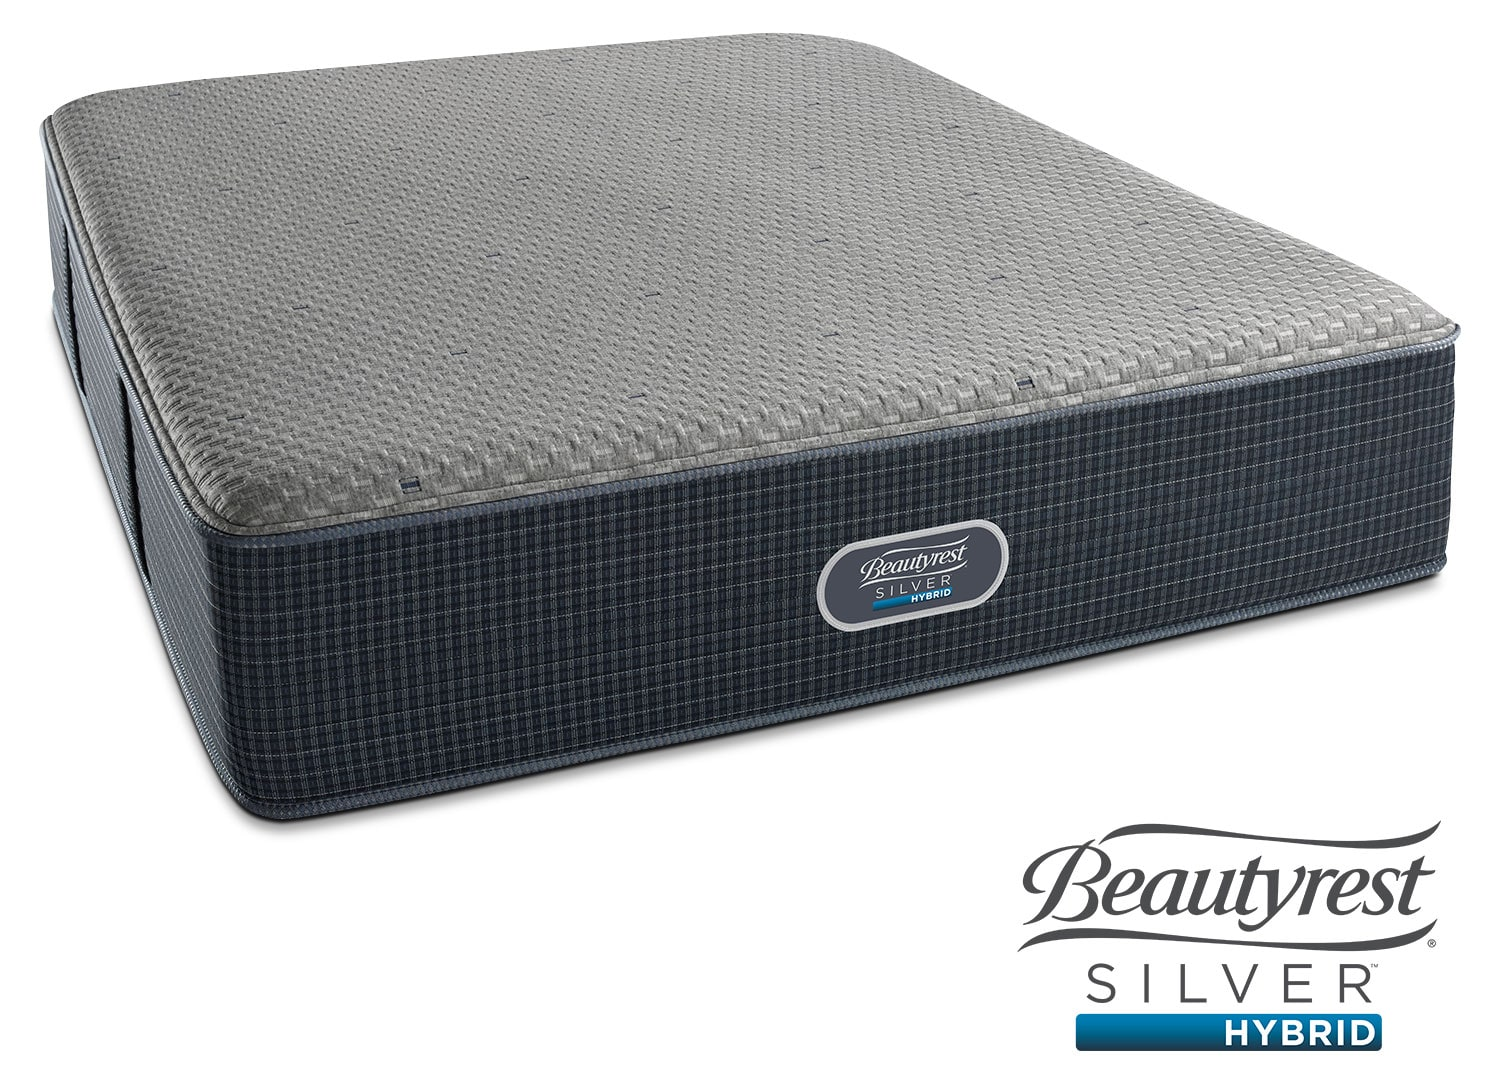 Mattresses and Bedding - Belle Island Ultra Plush California King Mattress